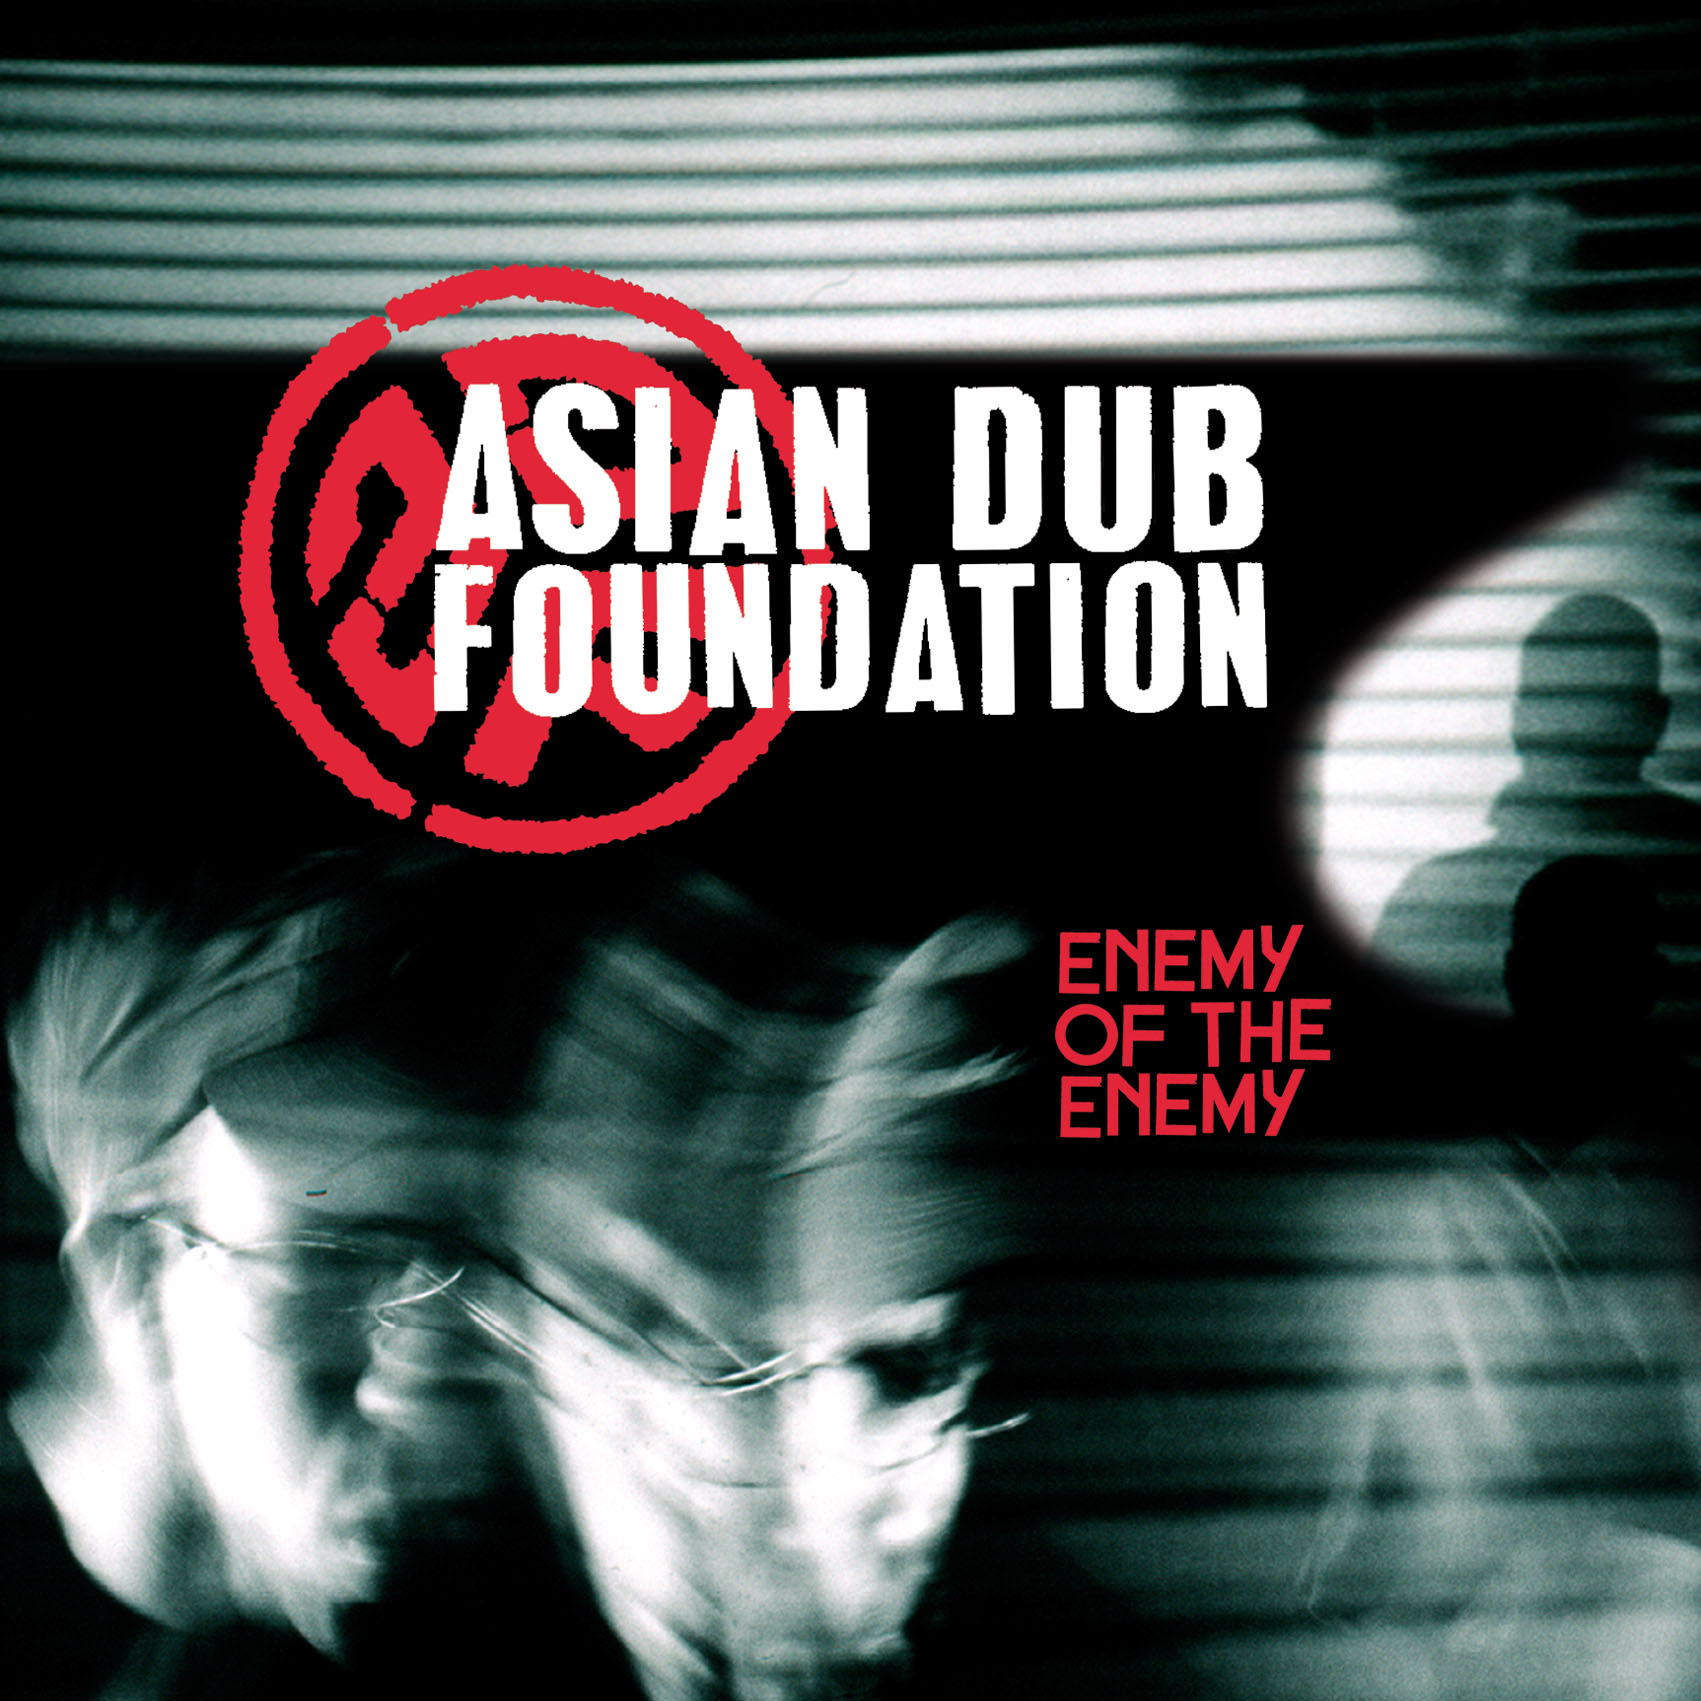 Asian Dub Foundation - Fortress Europe Lyrics | Musixmatch